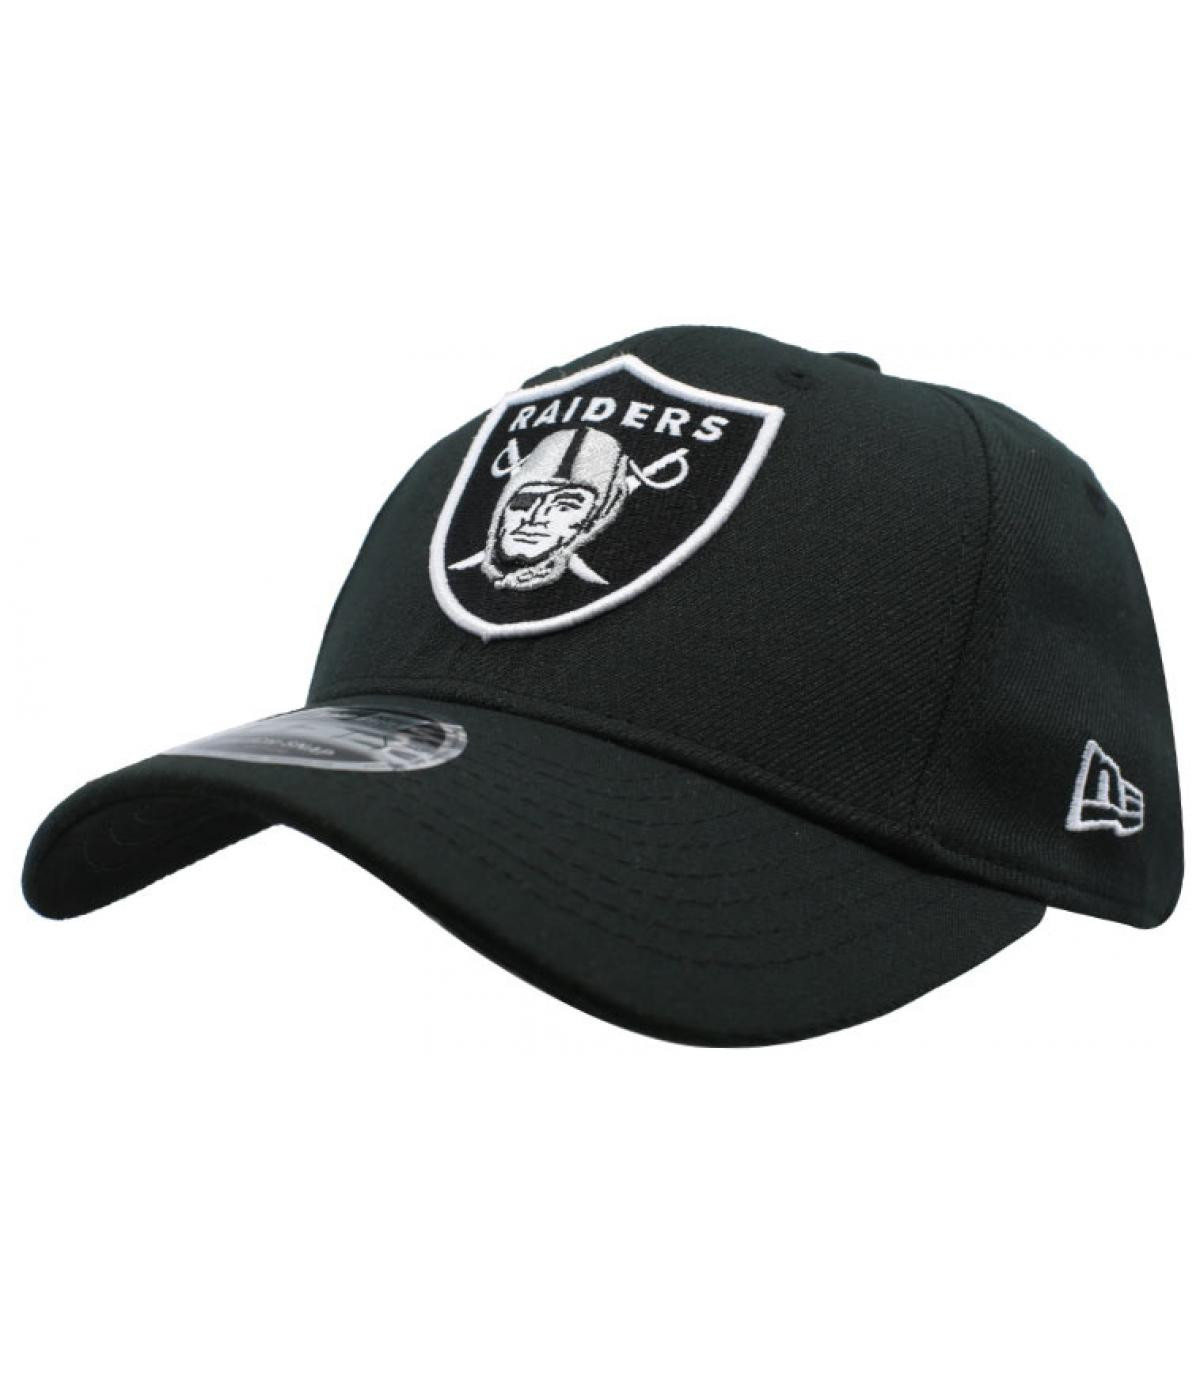 Détails Stretch Snap Raiders 9Fifty - image 2